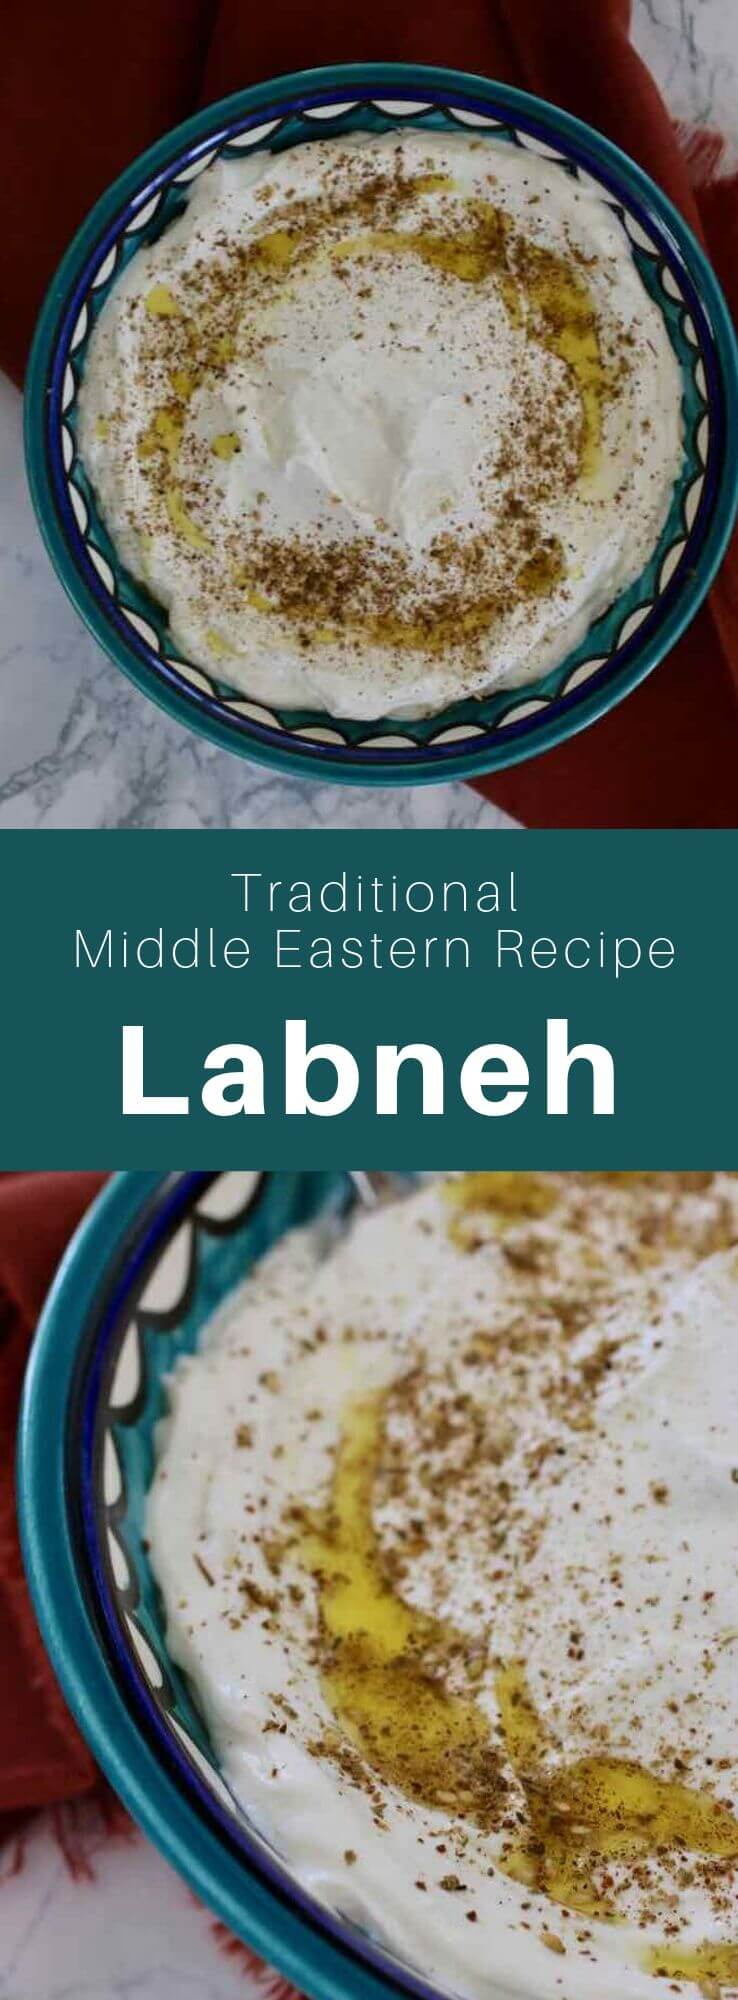 Labneh is a Middle Eastern specialty, a kind of cheese prepared with yogurt made from rich milk, which has been drained to remove most of its whey. #MiddleEast #MiddleEasternRecipe #MiddleEastCuisine #WorldCuisine #196flavors